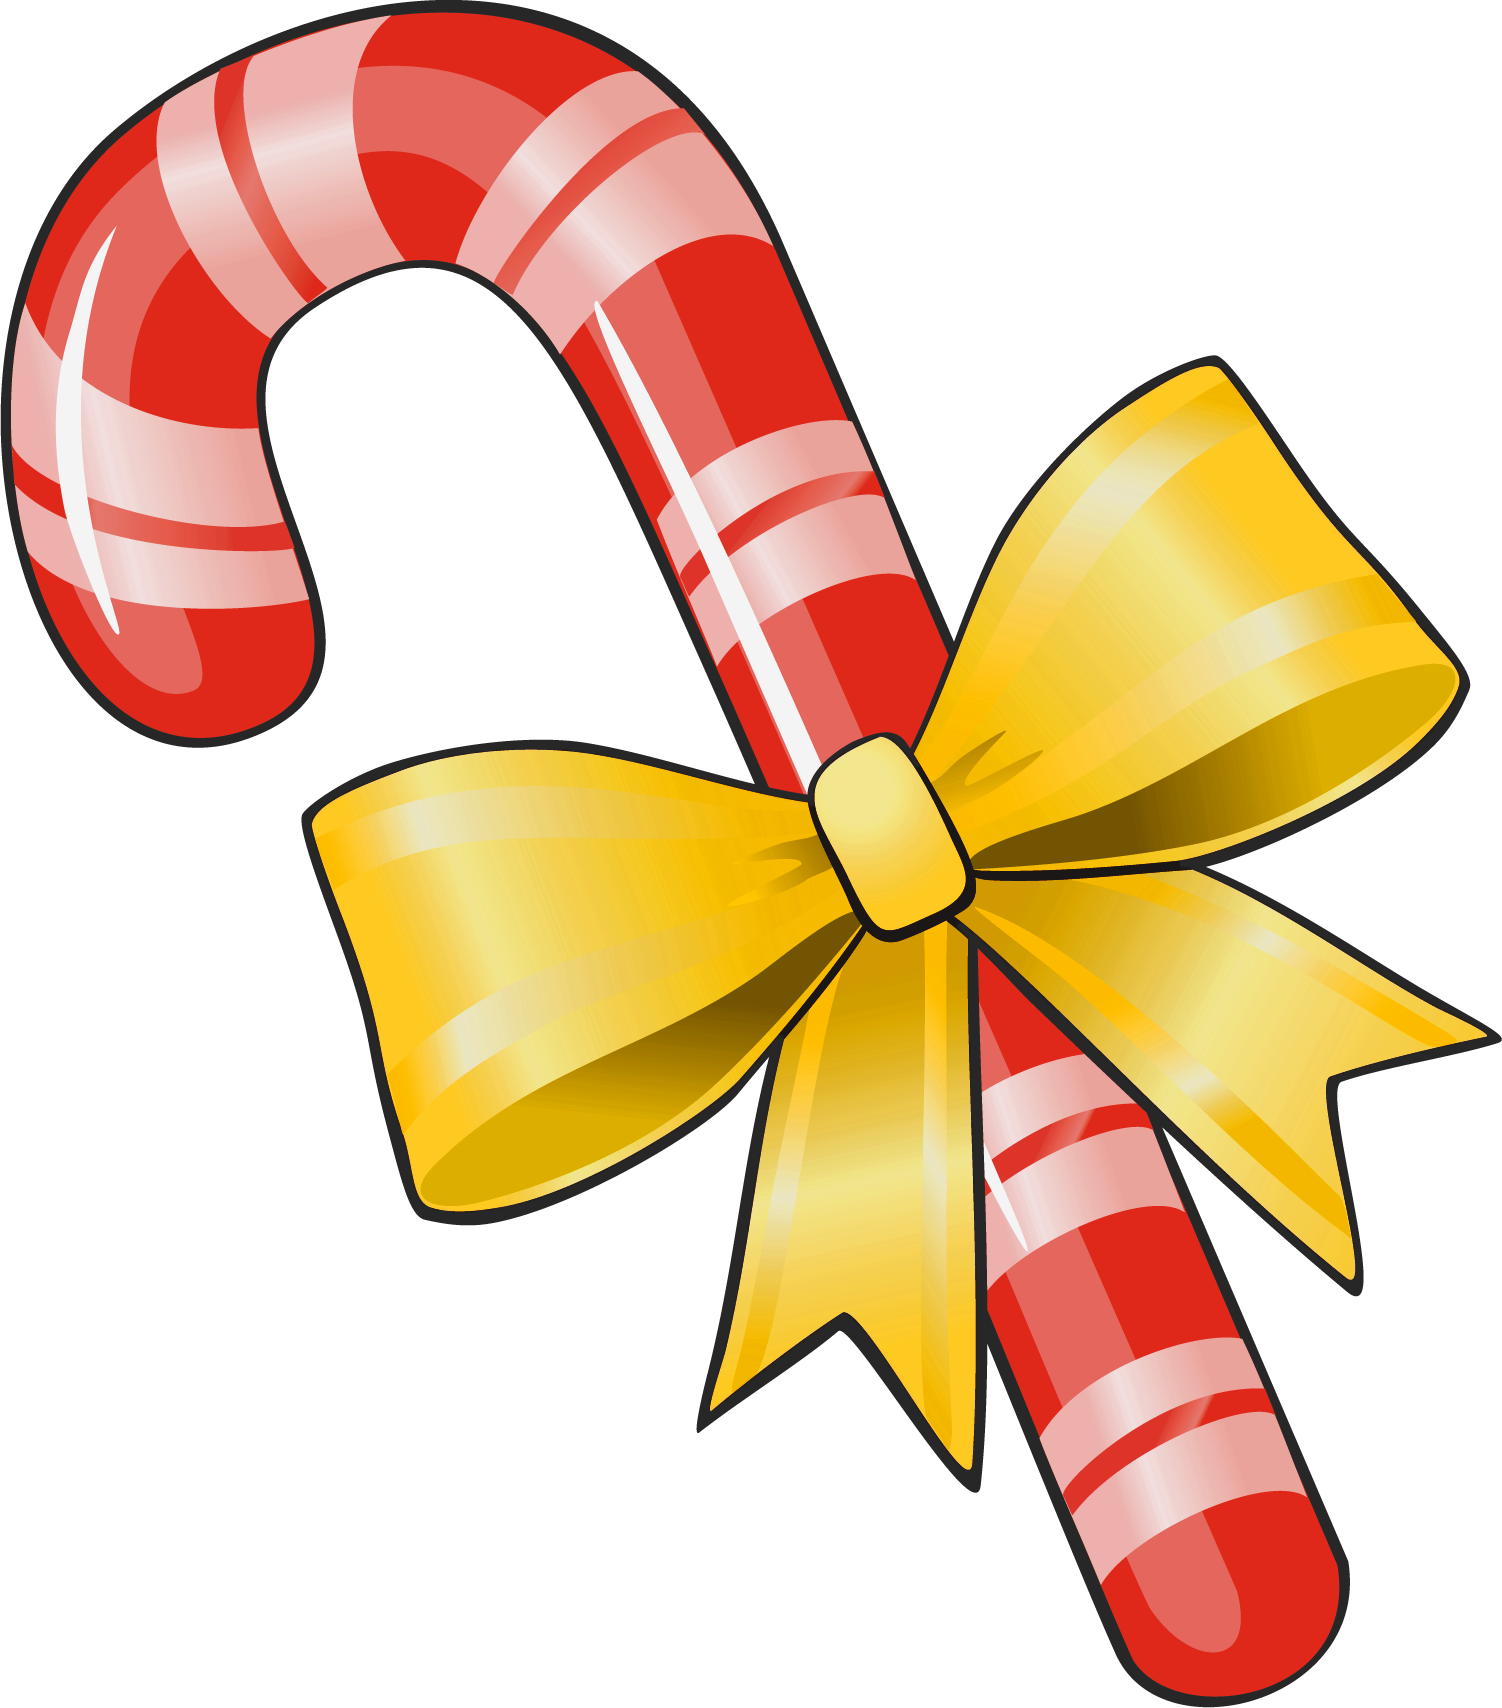 Candy Cane clipart christmas cookie Clipart View Candy size Yellow